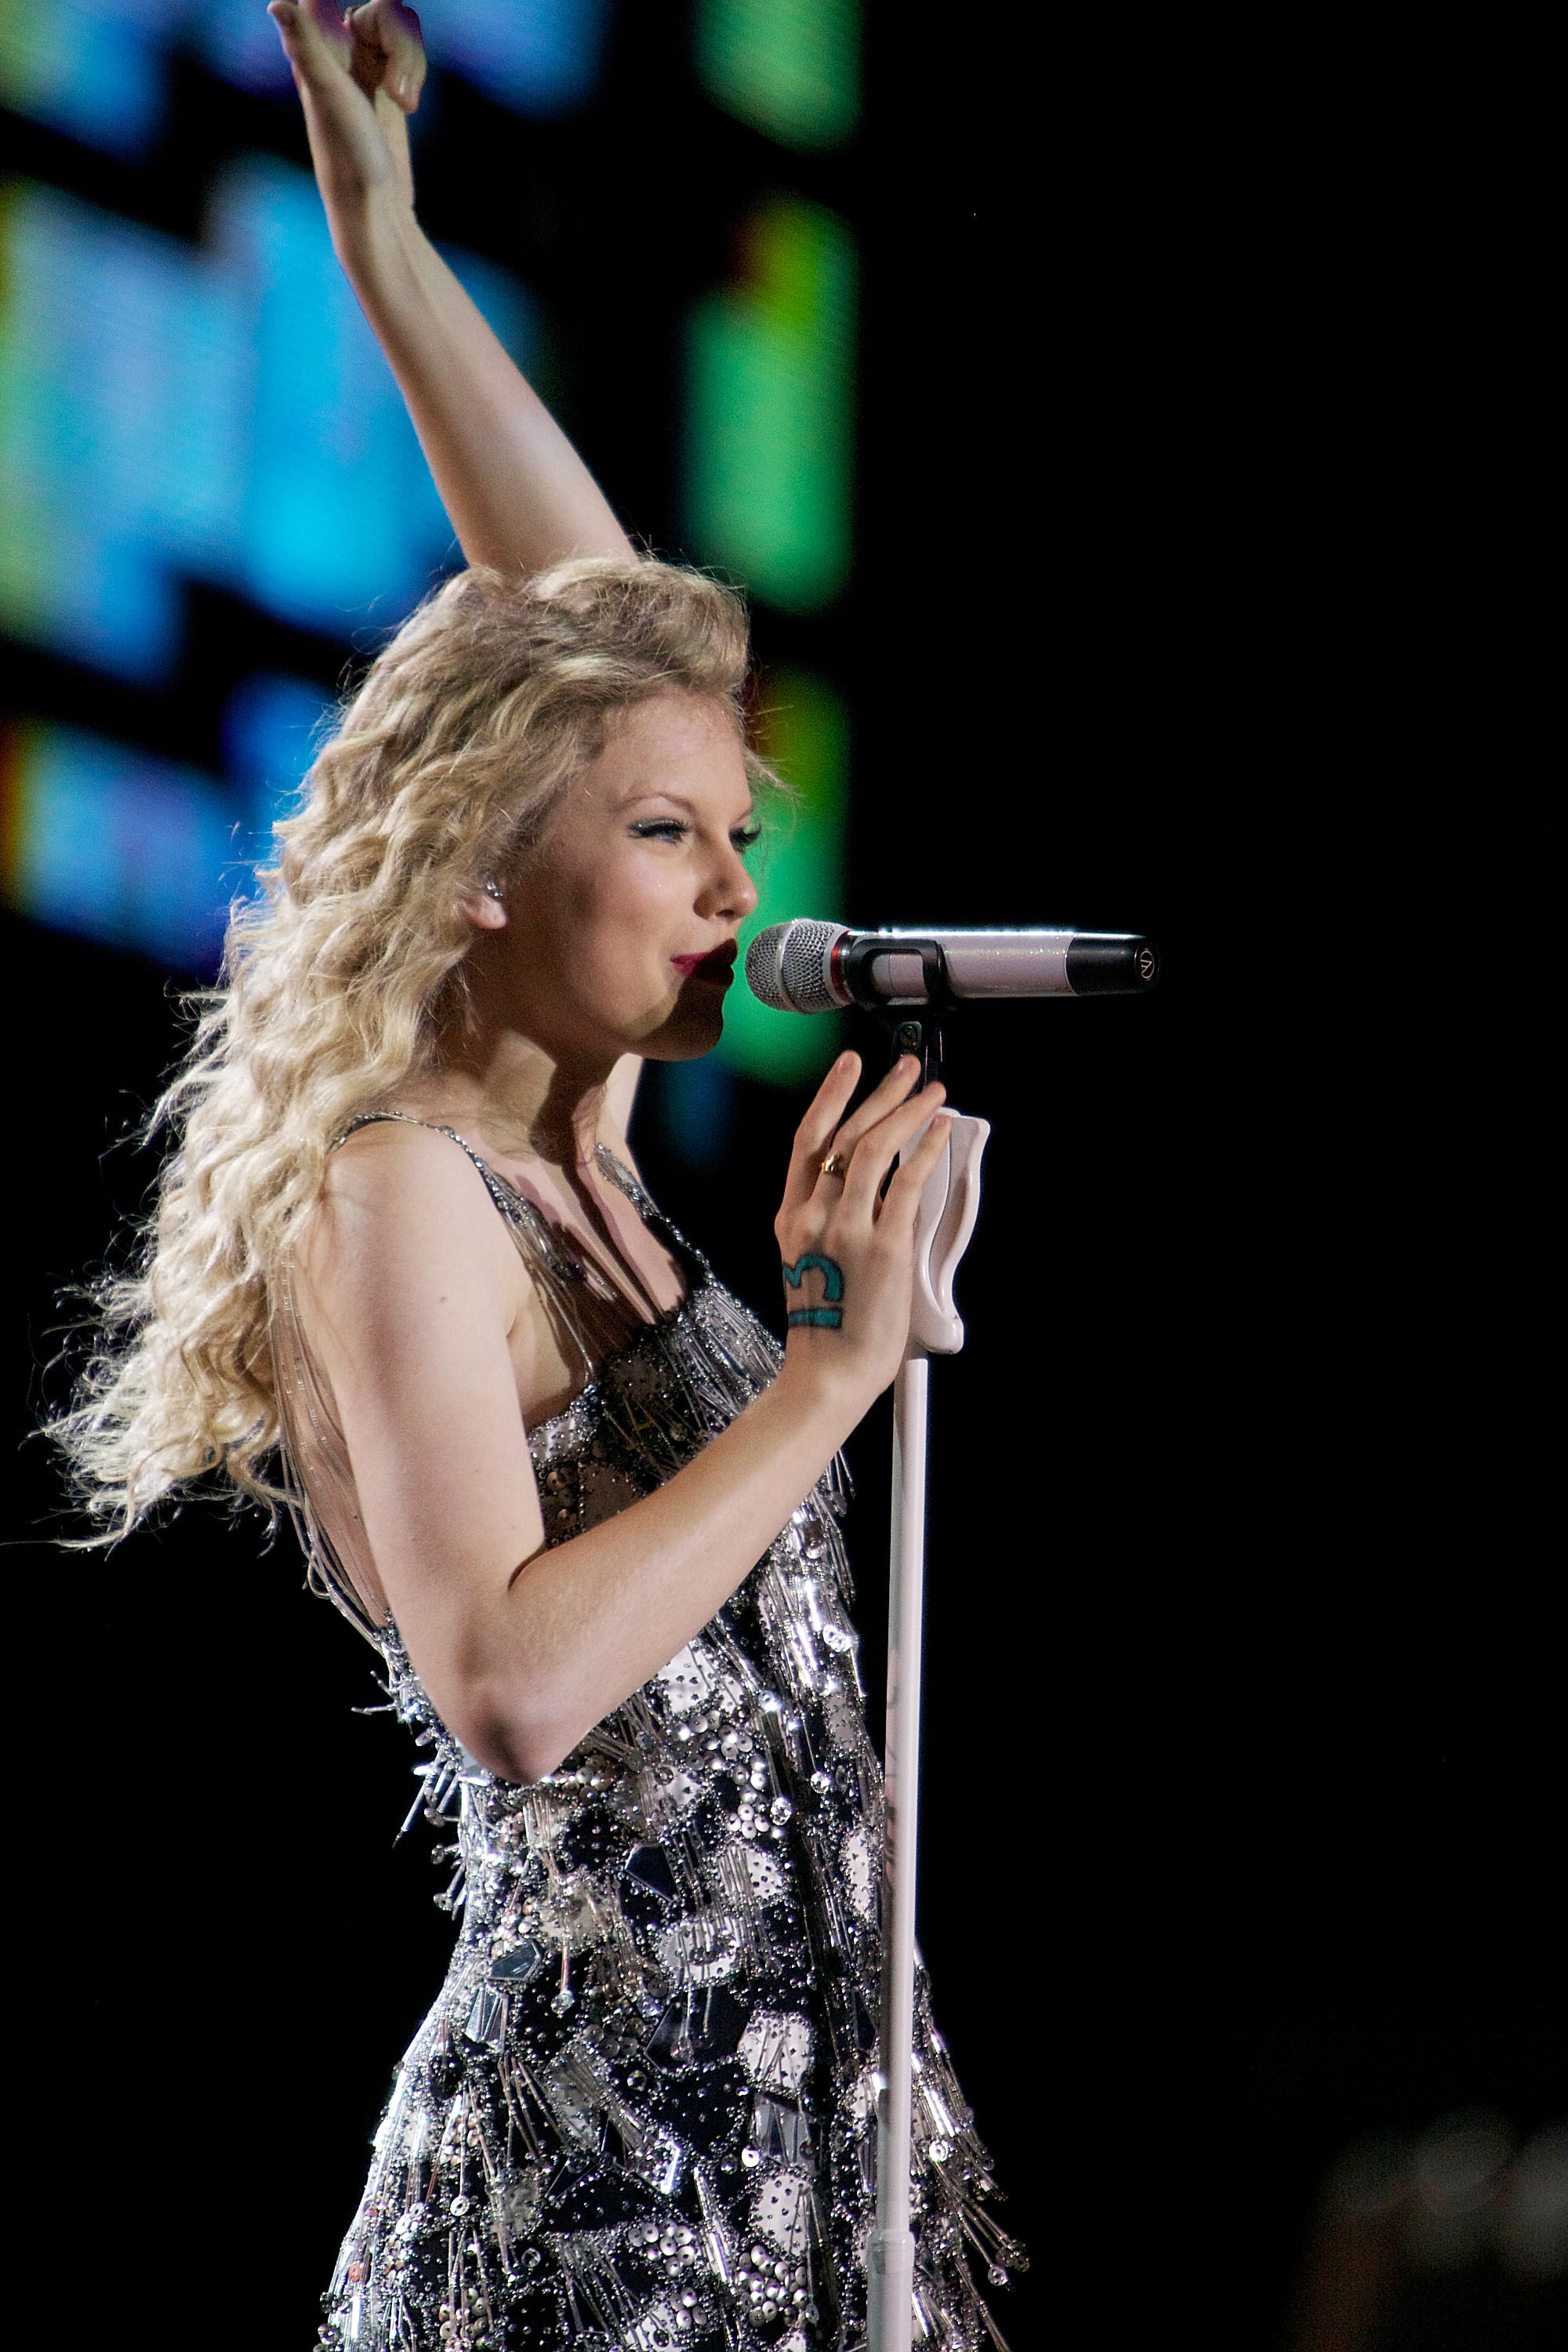 32617_Taylor_swift_performs_her_Fearless_Tour_at_Tiger_Stadium_024_122_123lo.jpg